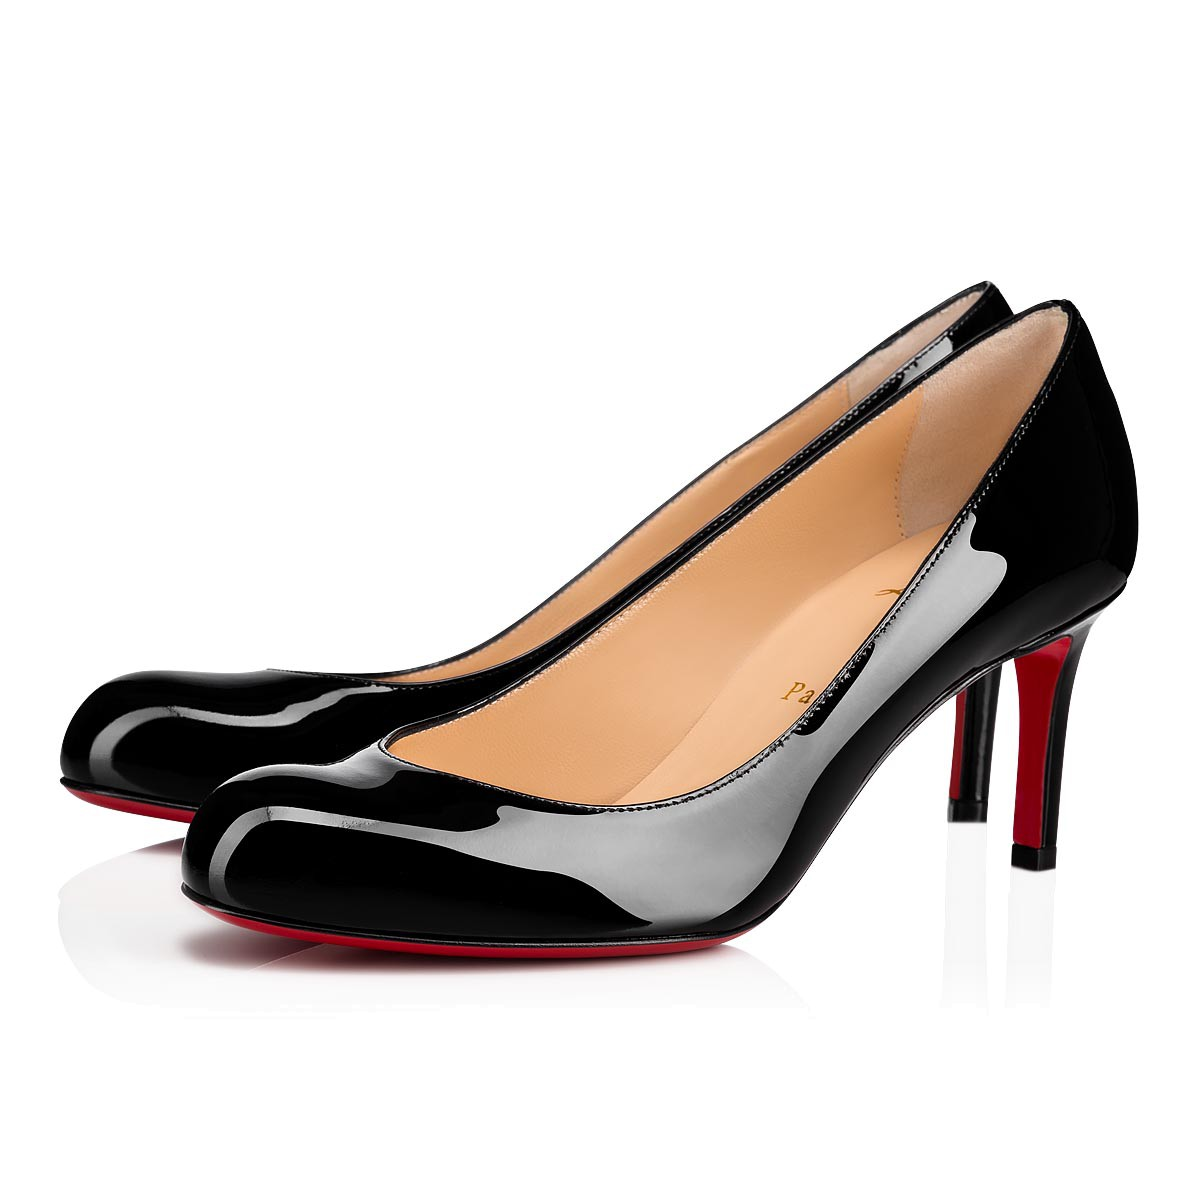 Women Shoes - Simple Pump - Christian Louboutin